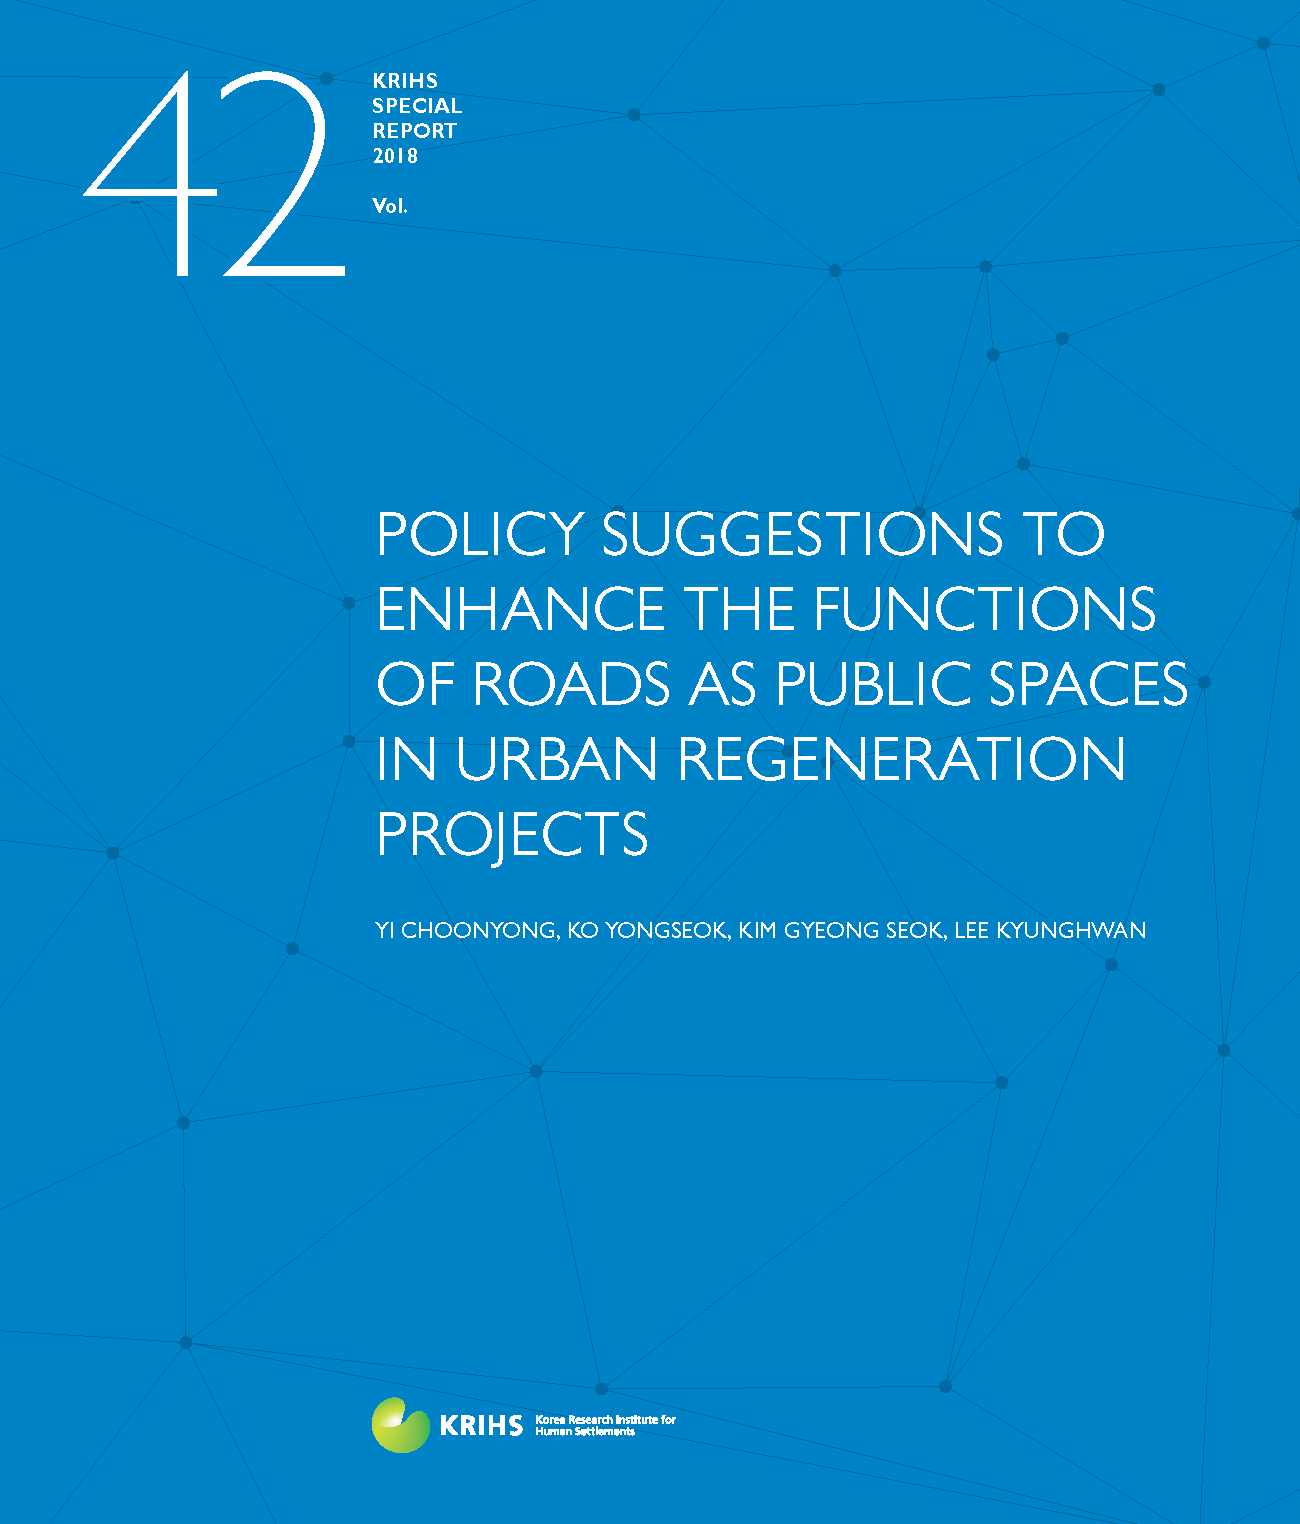 [KRIHS SPECIAL REPORT 42] POLICY SUGGESTIONS TO ENHANCE THE FUNCTIONS OF ROADS AS PUBLIC SPACES IN URBAN REGENERATION PROJECTS